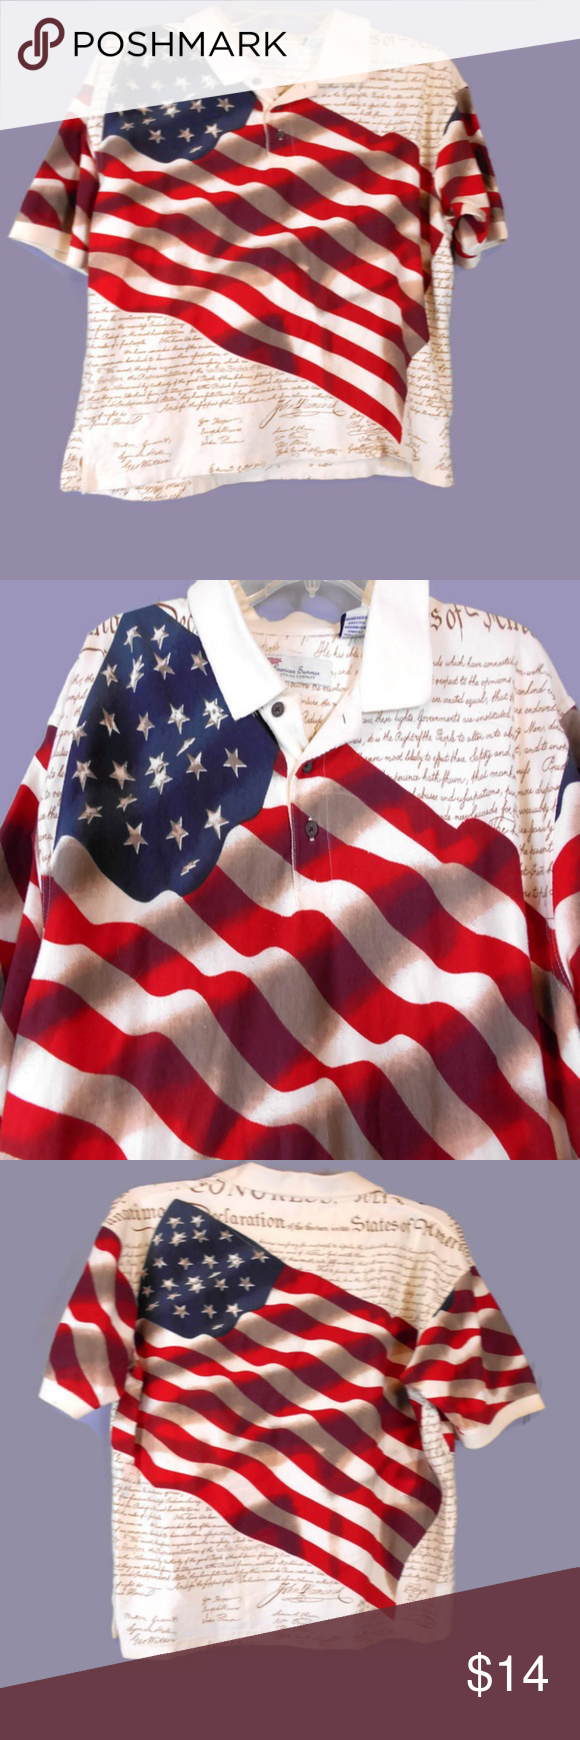 4899a60c7 Declaration of Independence Flag Print Polo Unique Cotton Polo, Featuring  an American Flag and Declaration of Independence Writing Background, Polo  Pullover ...